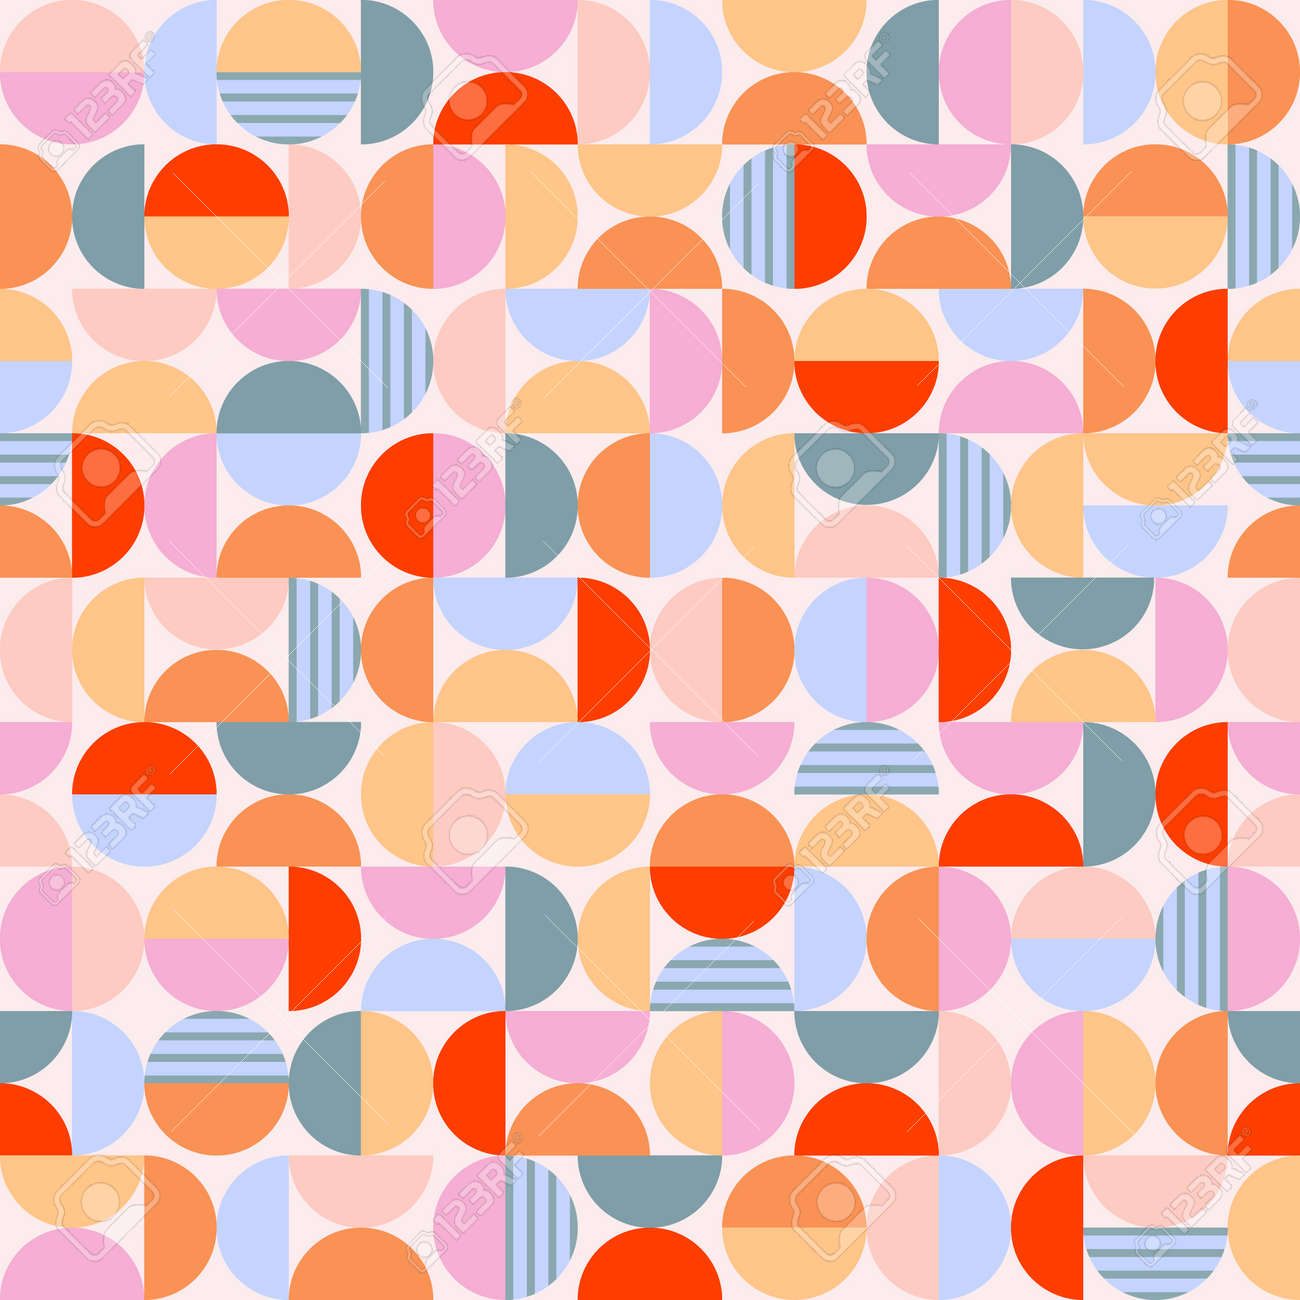 Geometry minimalistic artwork poster with circles and semicircles. Vintage style vector pattern design in scandinavian style for fabric print, web banner, business presentation and branding packages. - 168750291